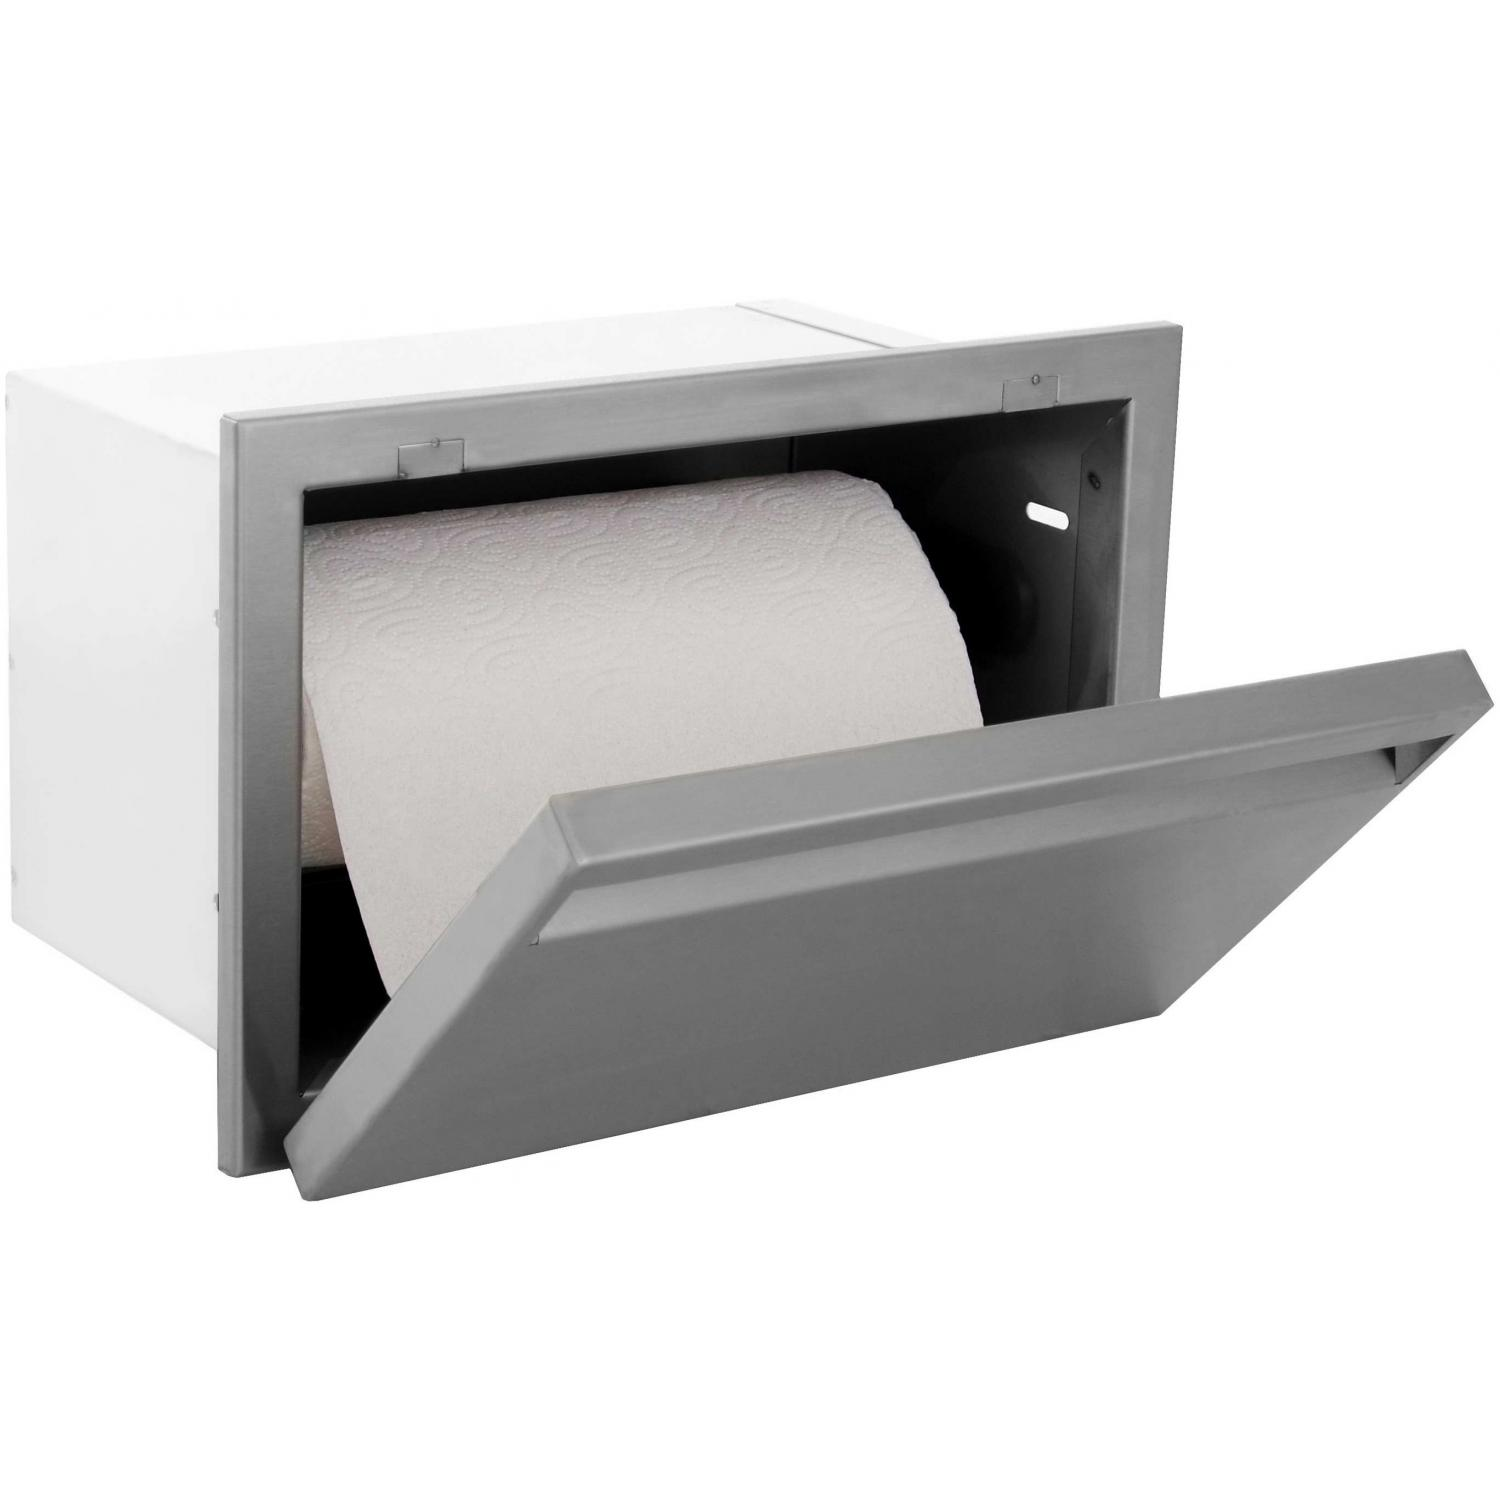 Picture of BBQGuyscom Aspen Series Built-In Stainless Steel Paper Towel Dispenser